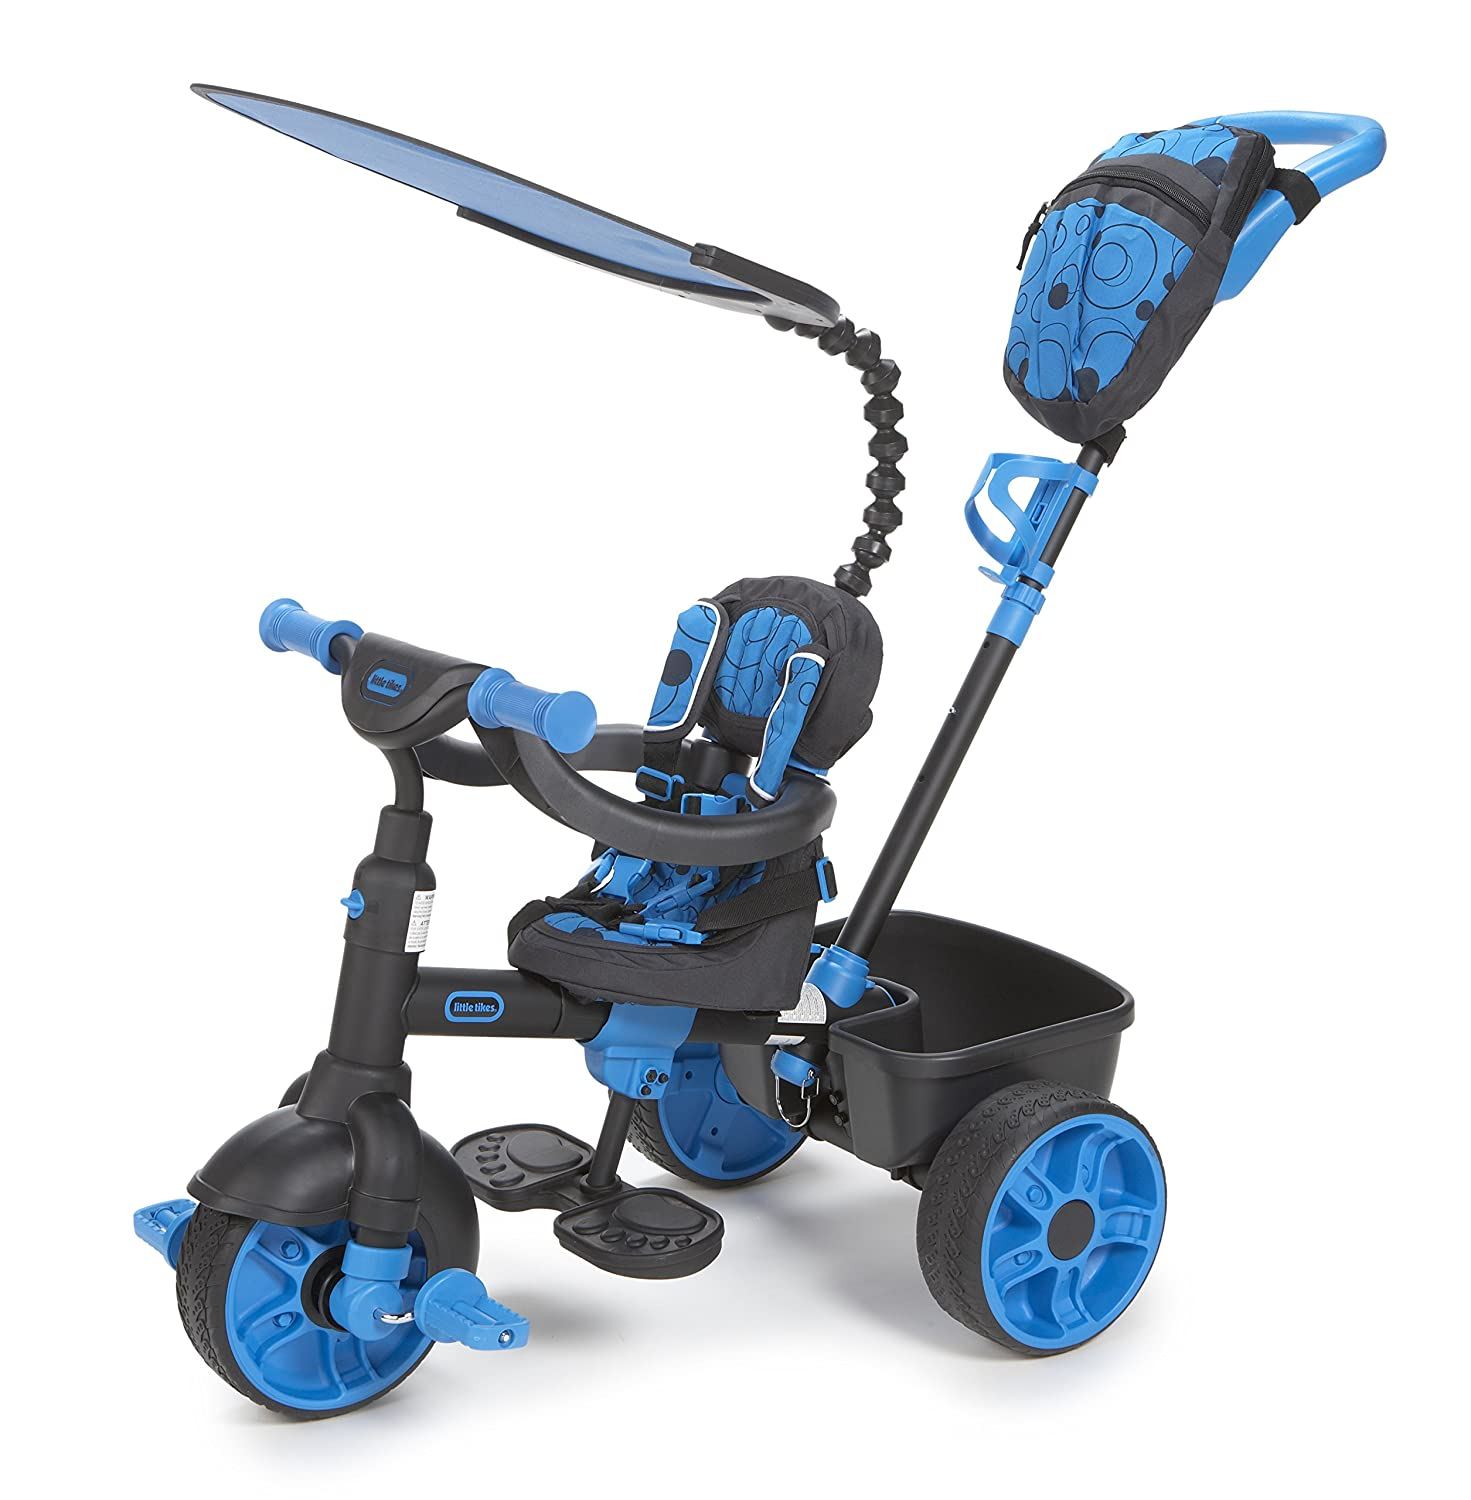 Best Tricycles For Toddlers Top Reviewed In 2018 Mmnt Fisher Price Harley Davidson Ride On Tough Trike If You Are Looking A Tricycle That Really Offers It All Take Close Look At The Little Tikes 4 1 Deluxe Edition Luxury Will Grow